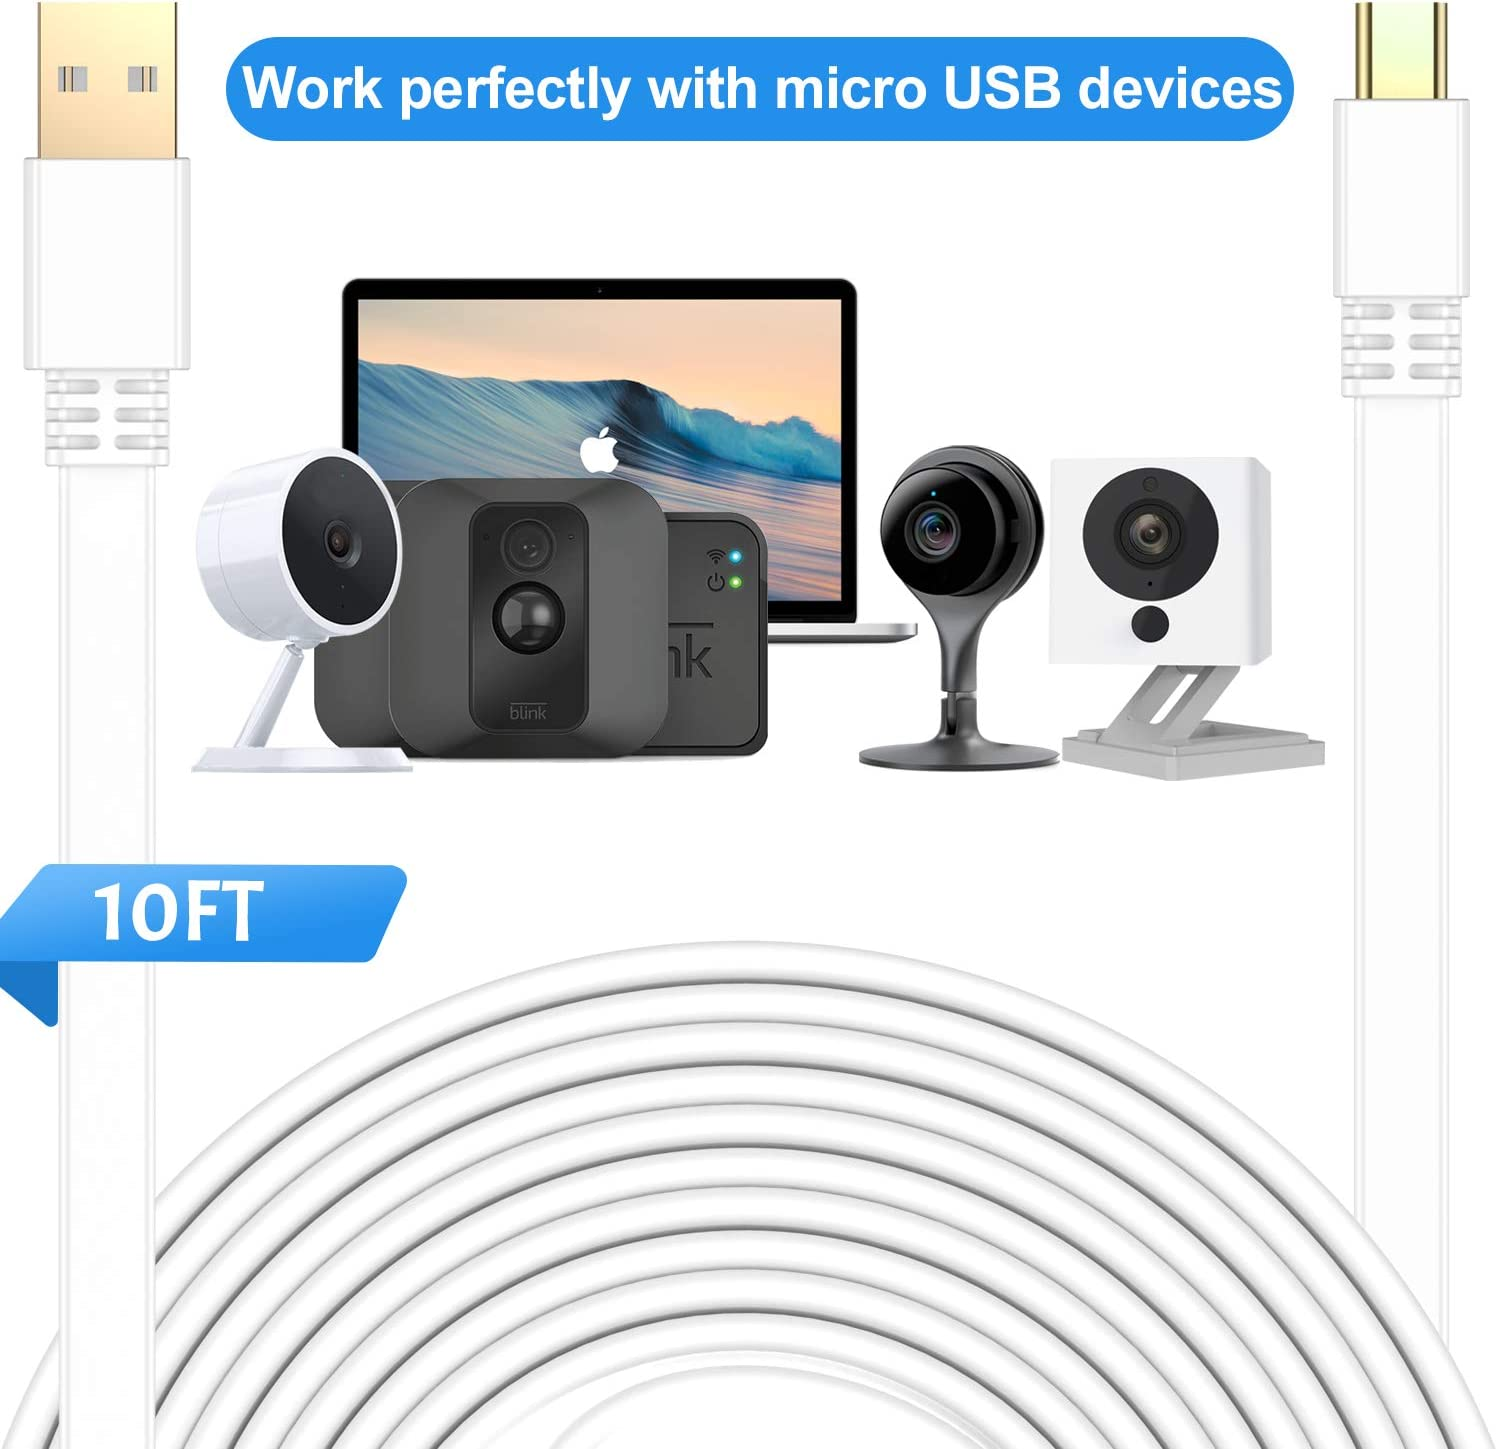 30FT//9M, Black Elebase Micro USB Power Cable 30 Feet ,Flat Micro USB Charging Cord,Charger for Wyze Cam Pan,Yi Cam,Nest Cam,Blink XT Camera,Furbo Dog,Arlo Q,Netvue,Xbox One Controller 2 Pack